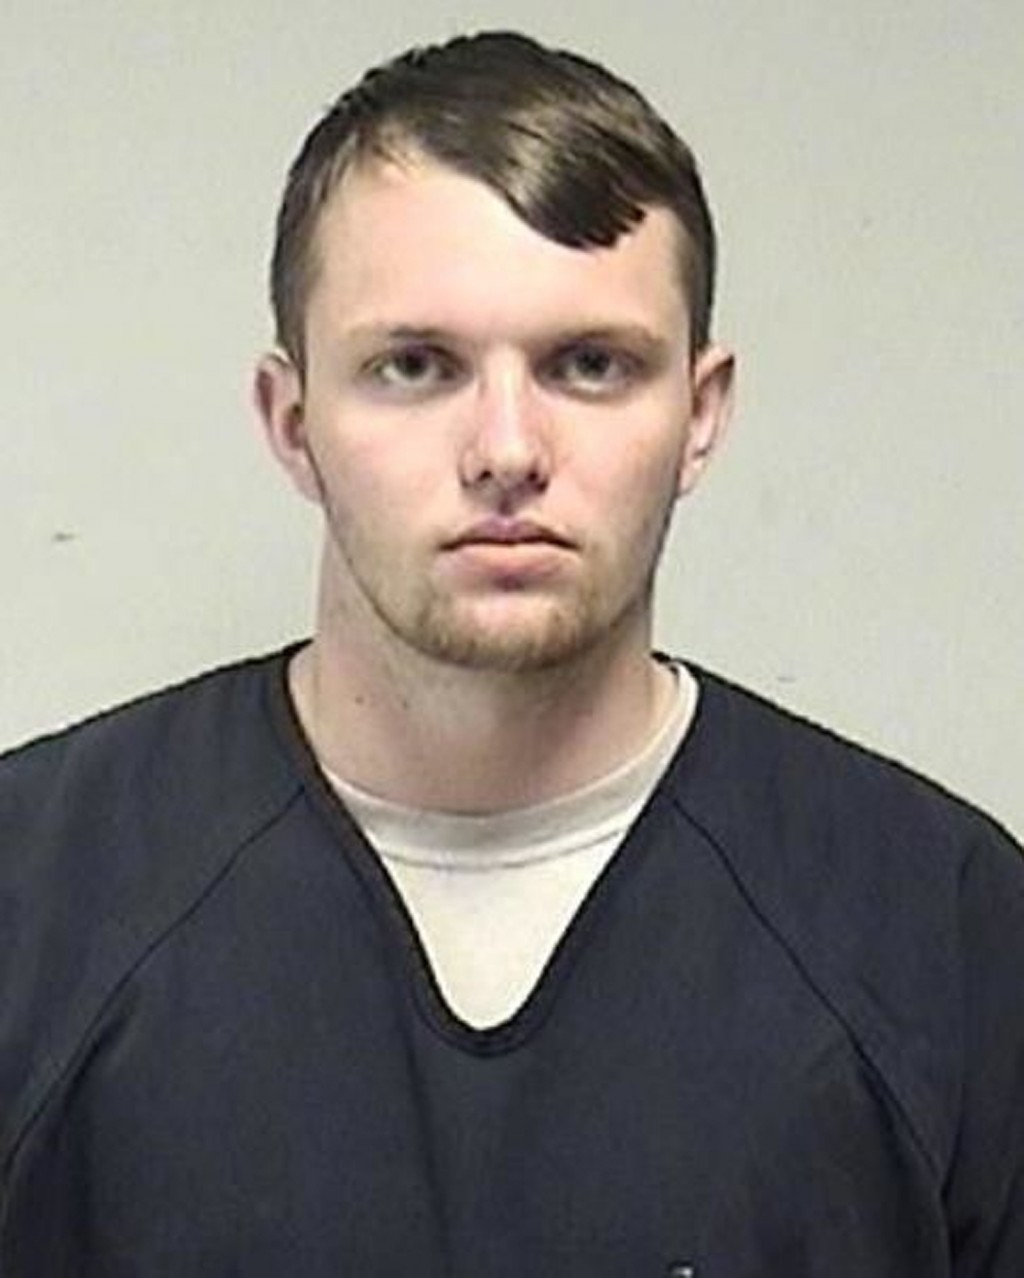 In this photo provided by the Kenosha County Sheriff's Office, Tyler Huffhines is pictured in a booking photo. Huffhines is accused of manufacturing t